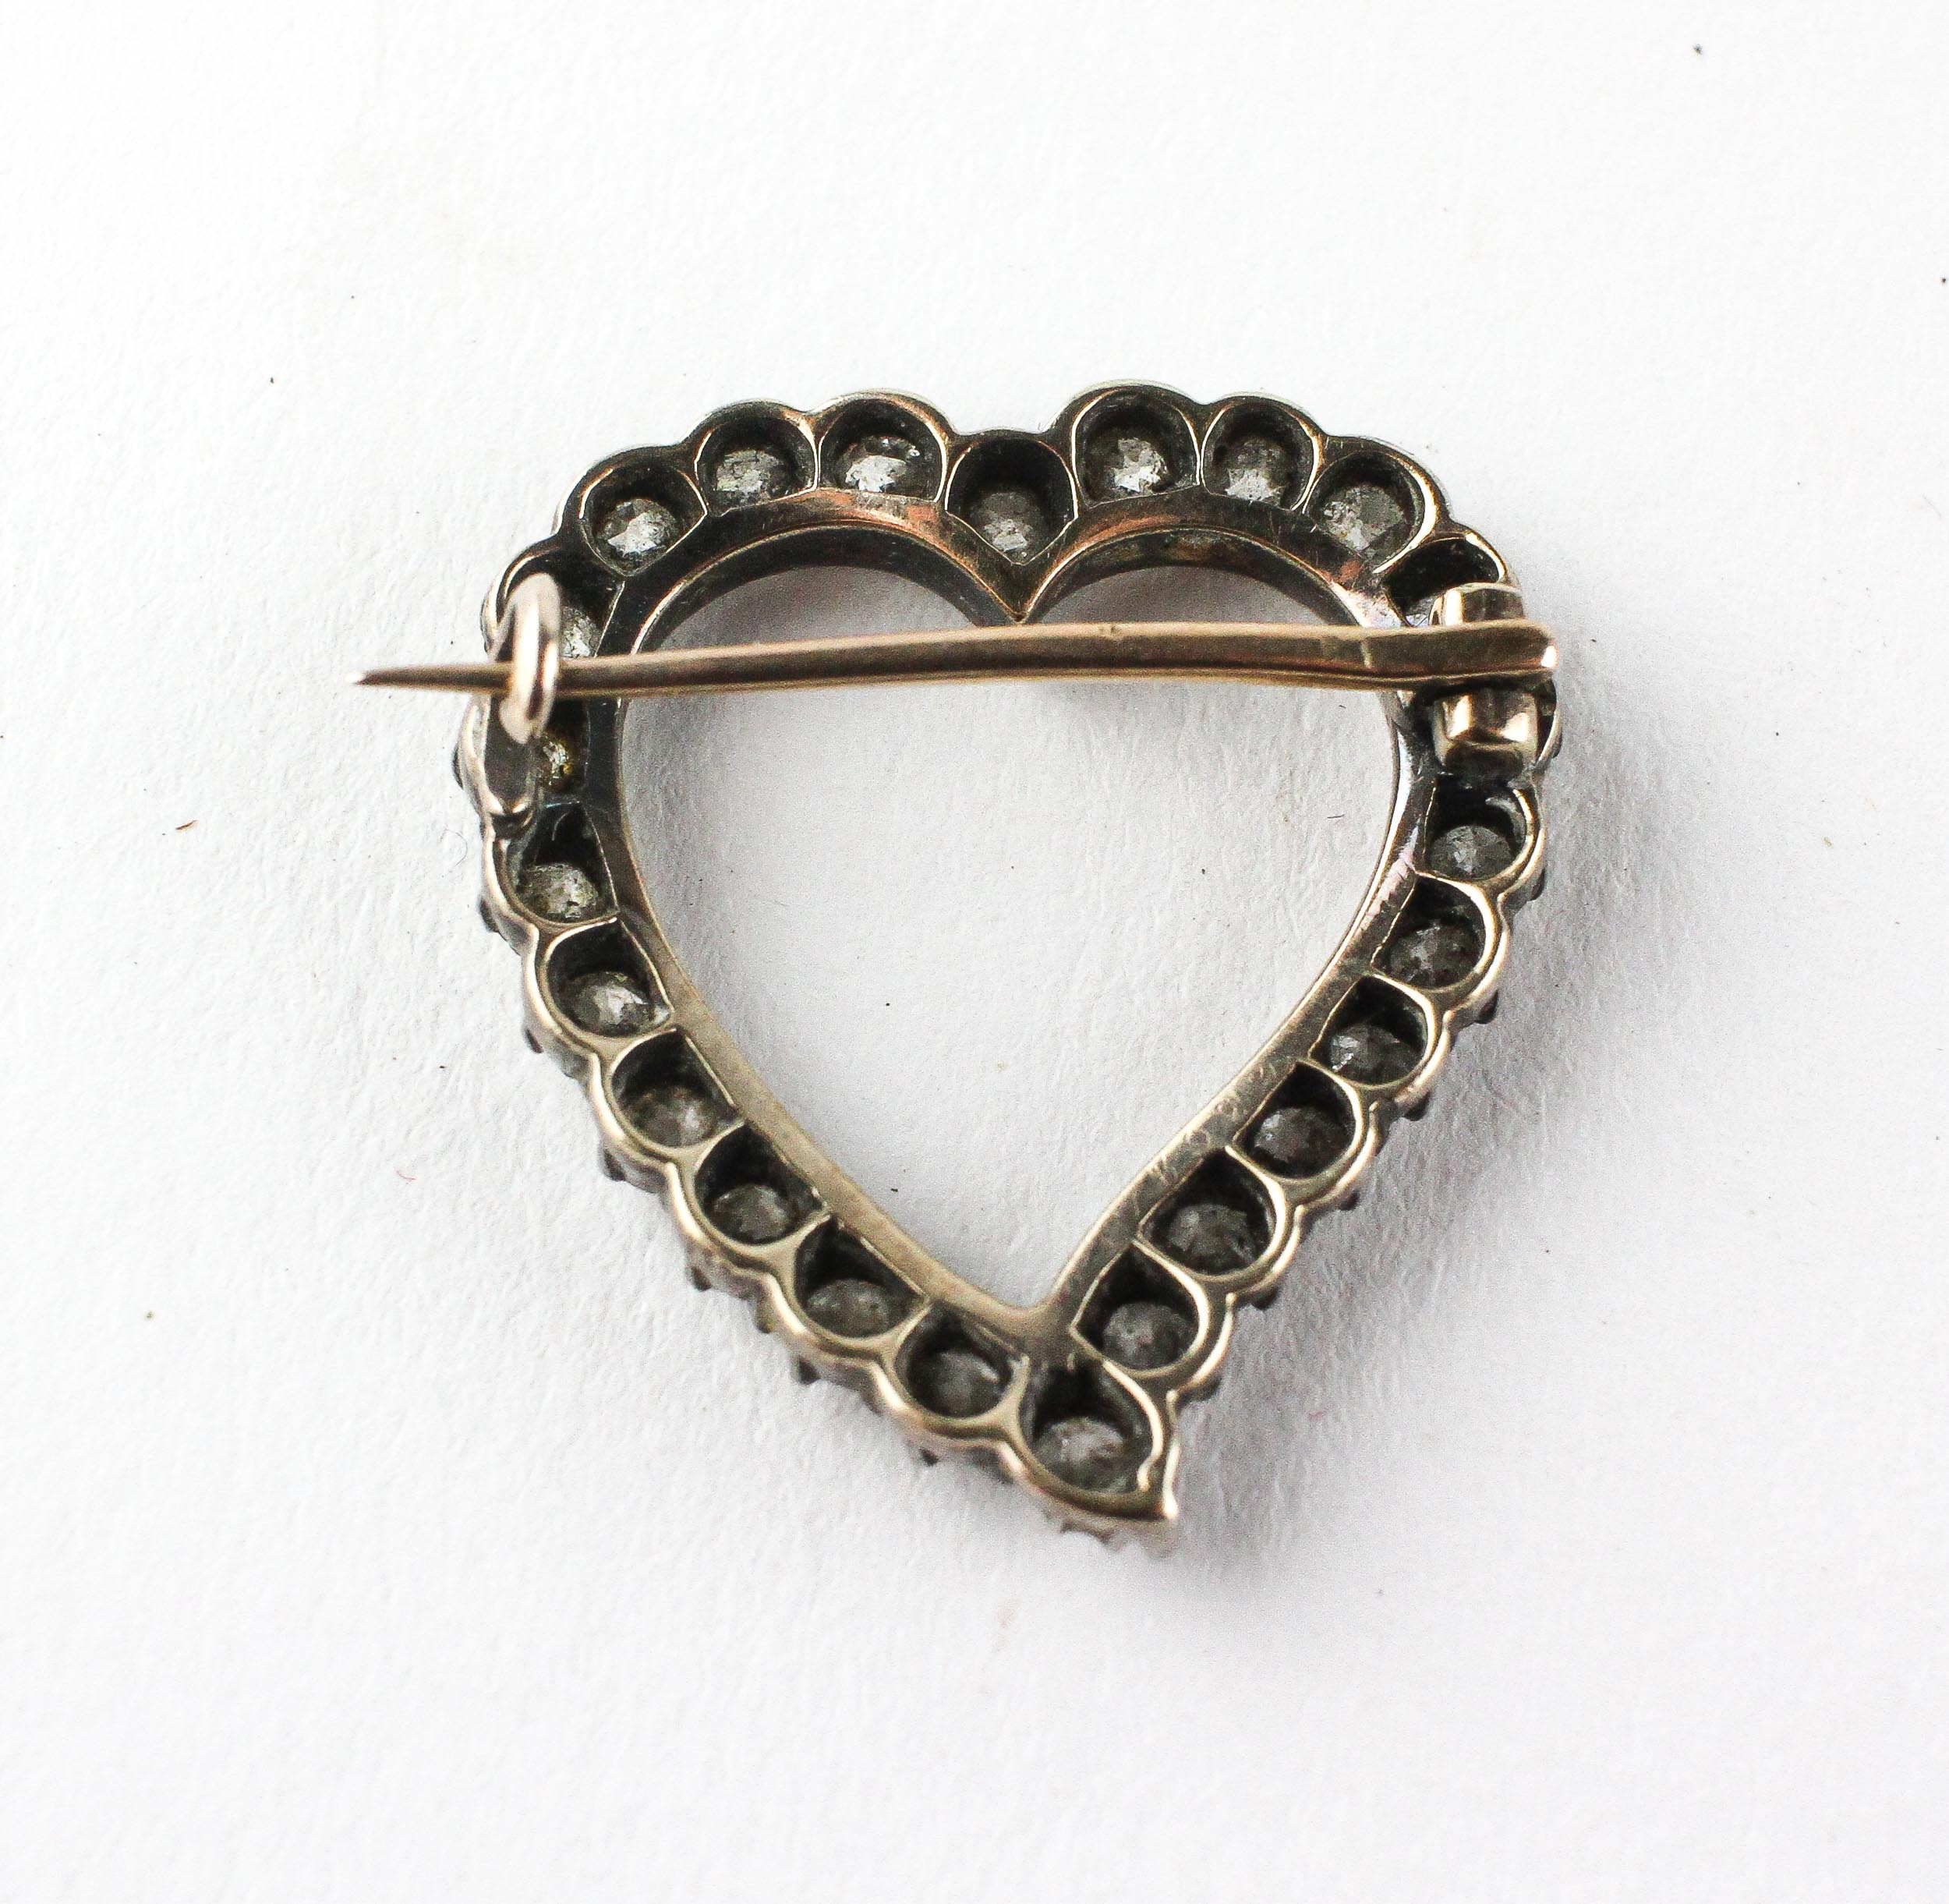 A yellow and white metal open heart brooch set with twenty four old European cut diamonds - Image 2 of 2